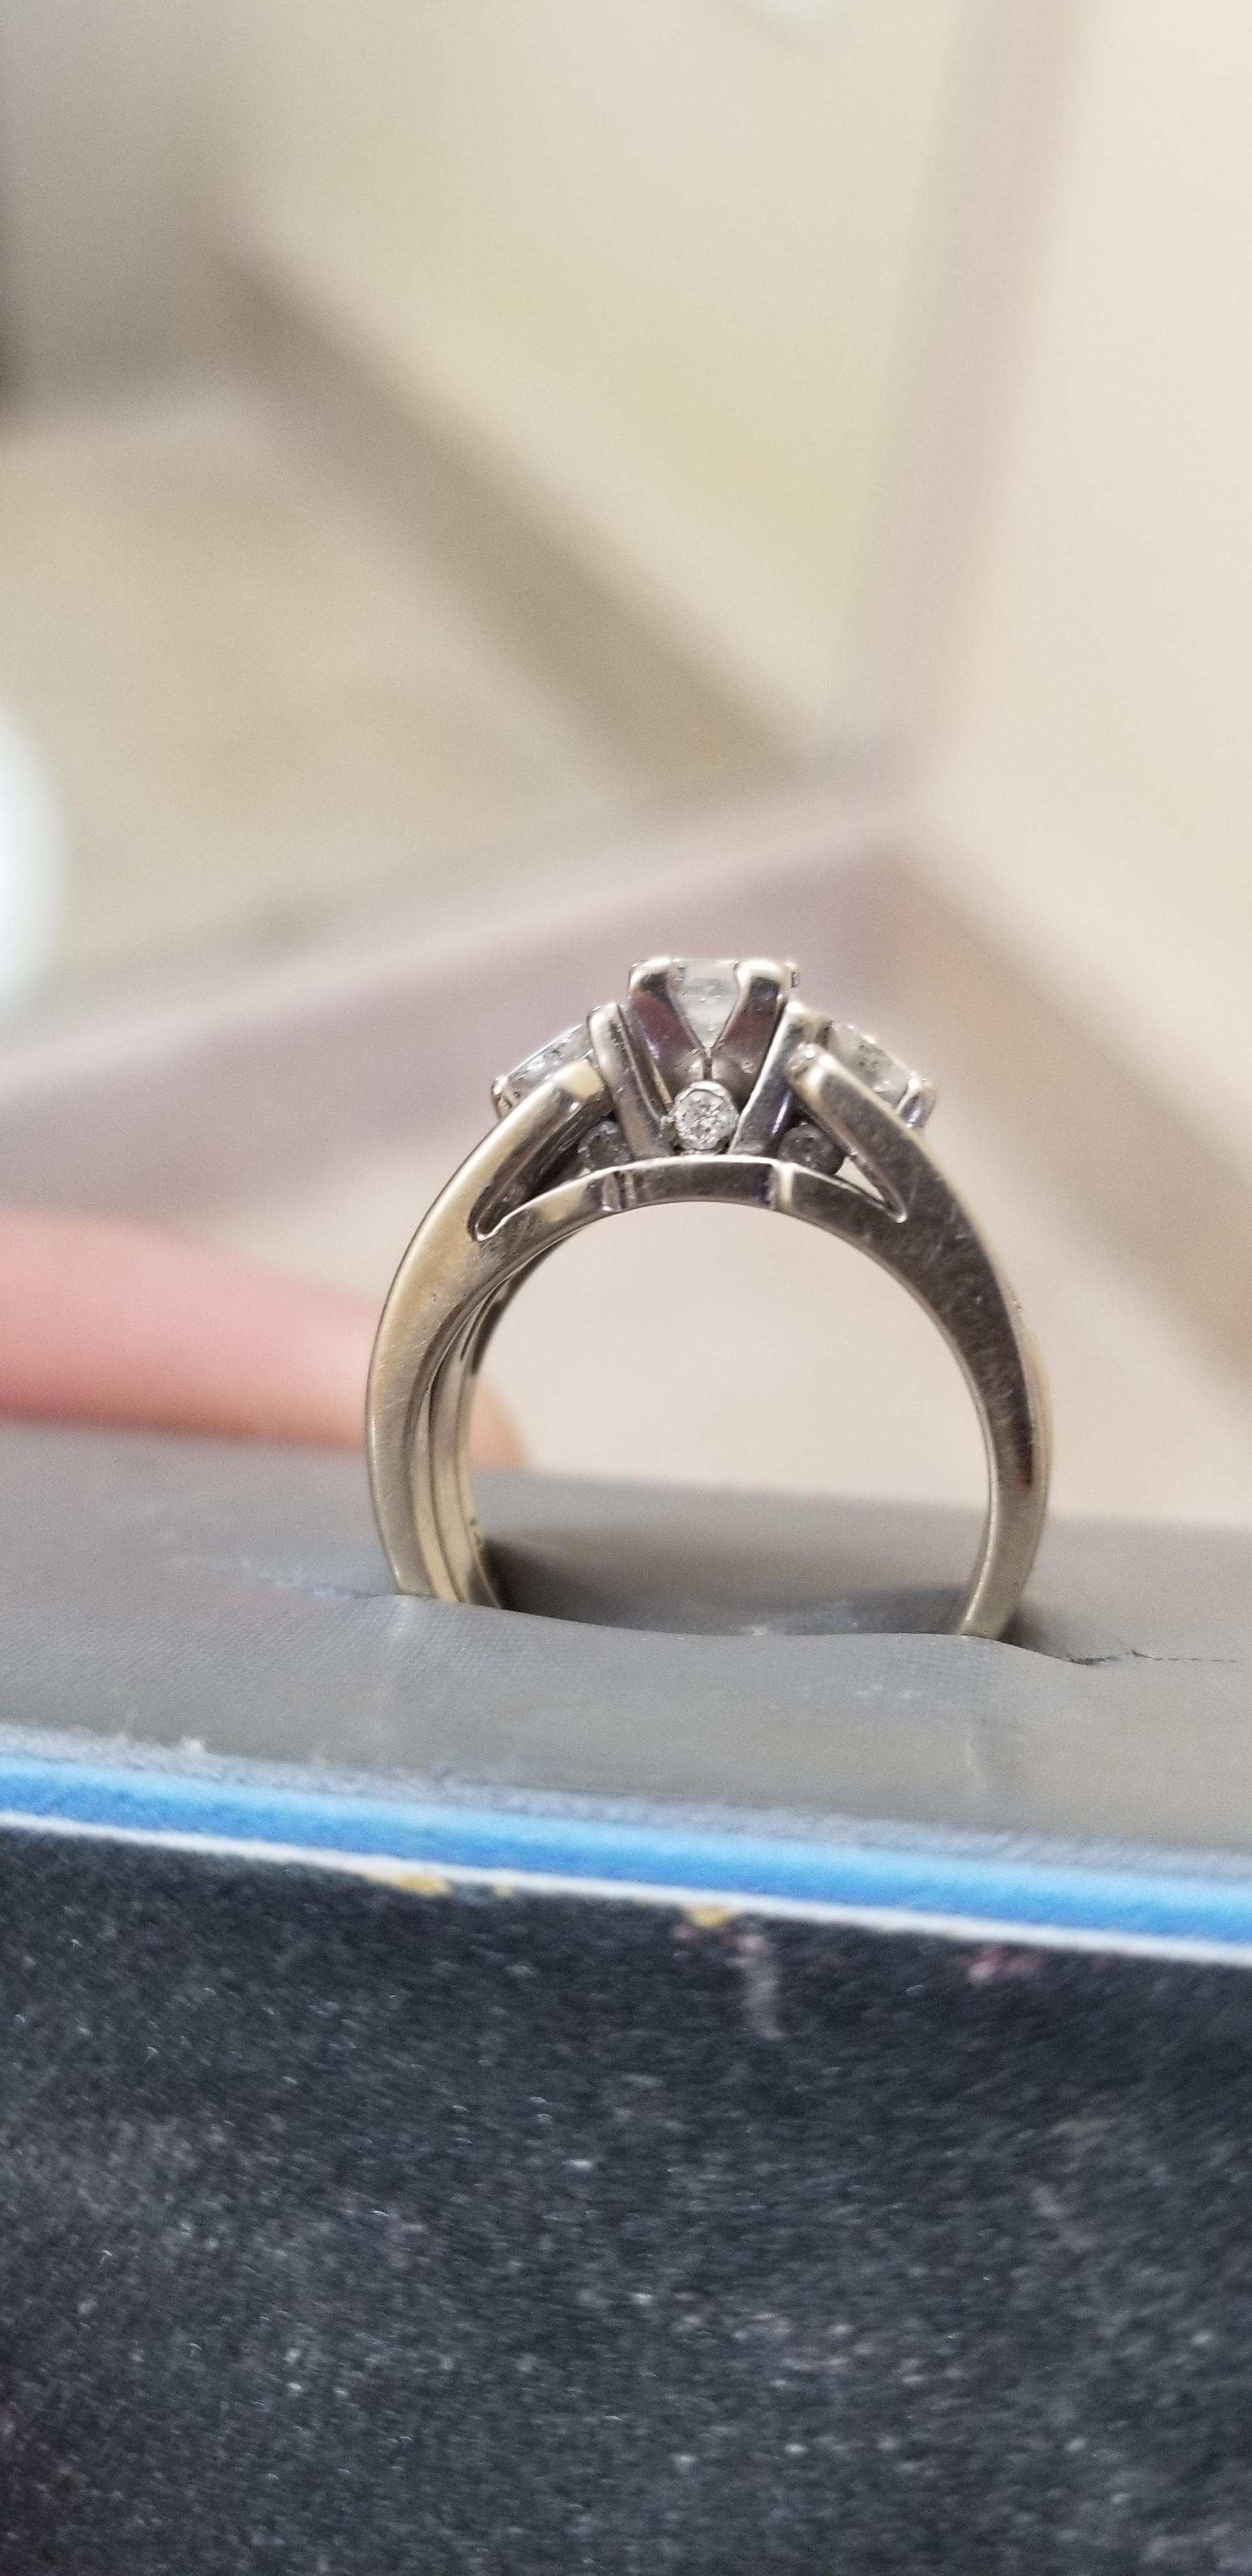 Engagement and wedding band